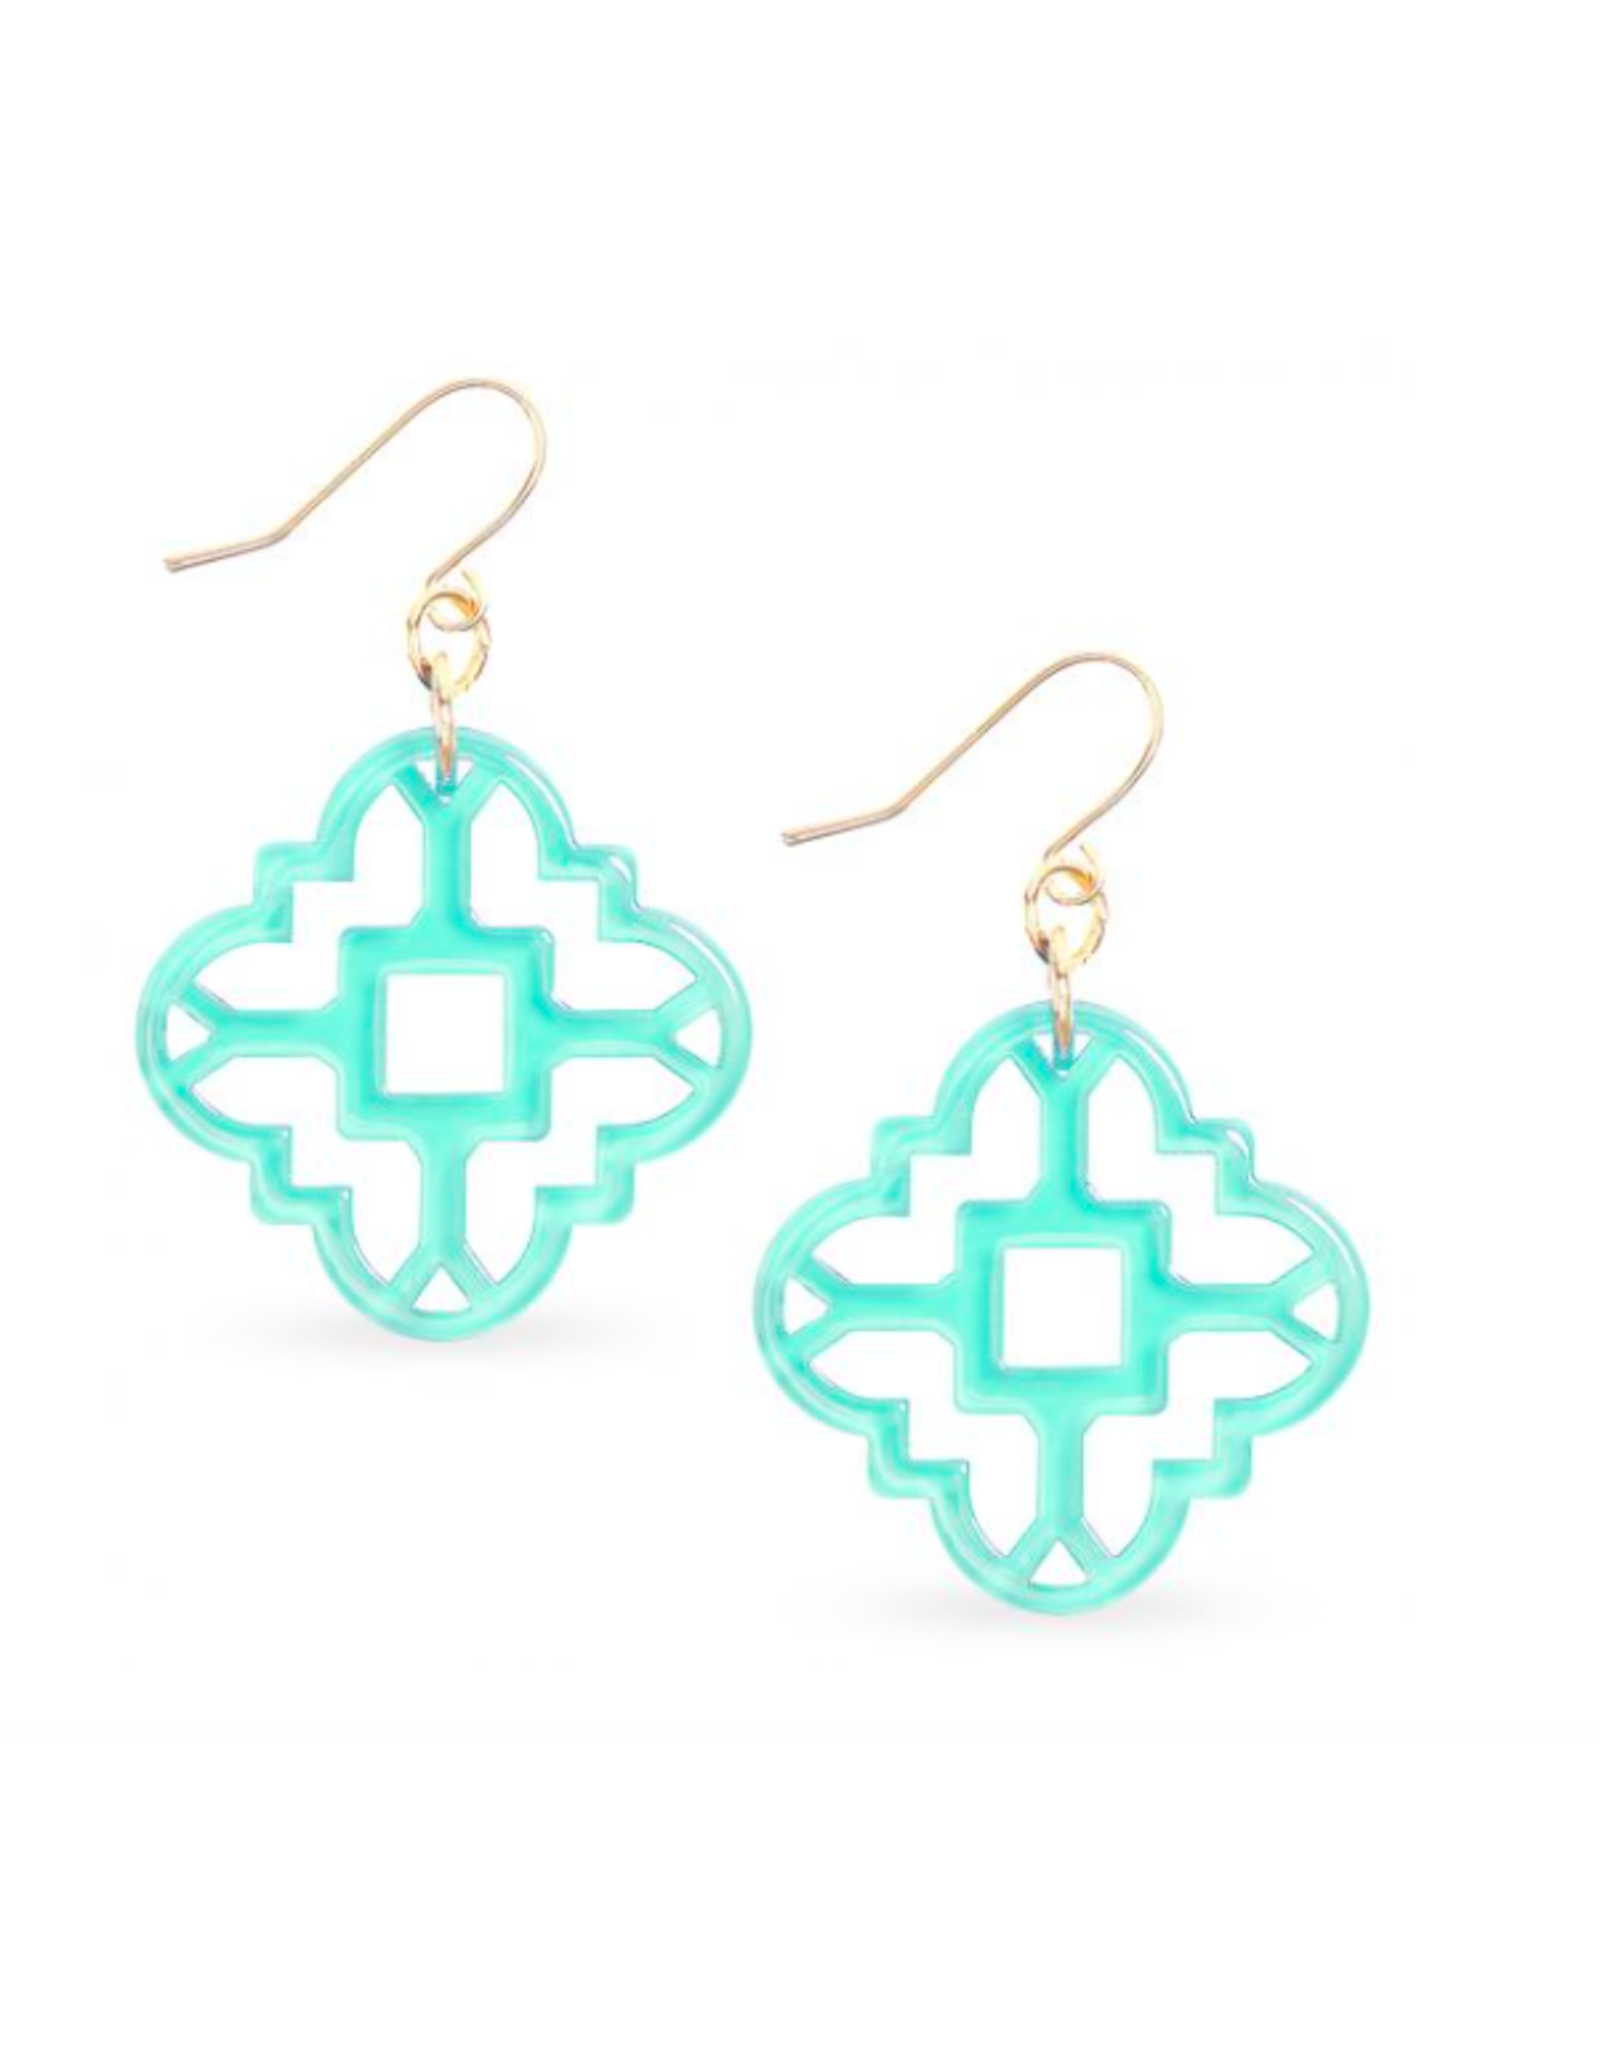 Zenzii Modern Mosaic Earrings in Mint